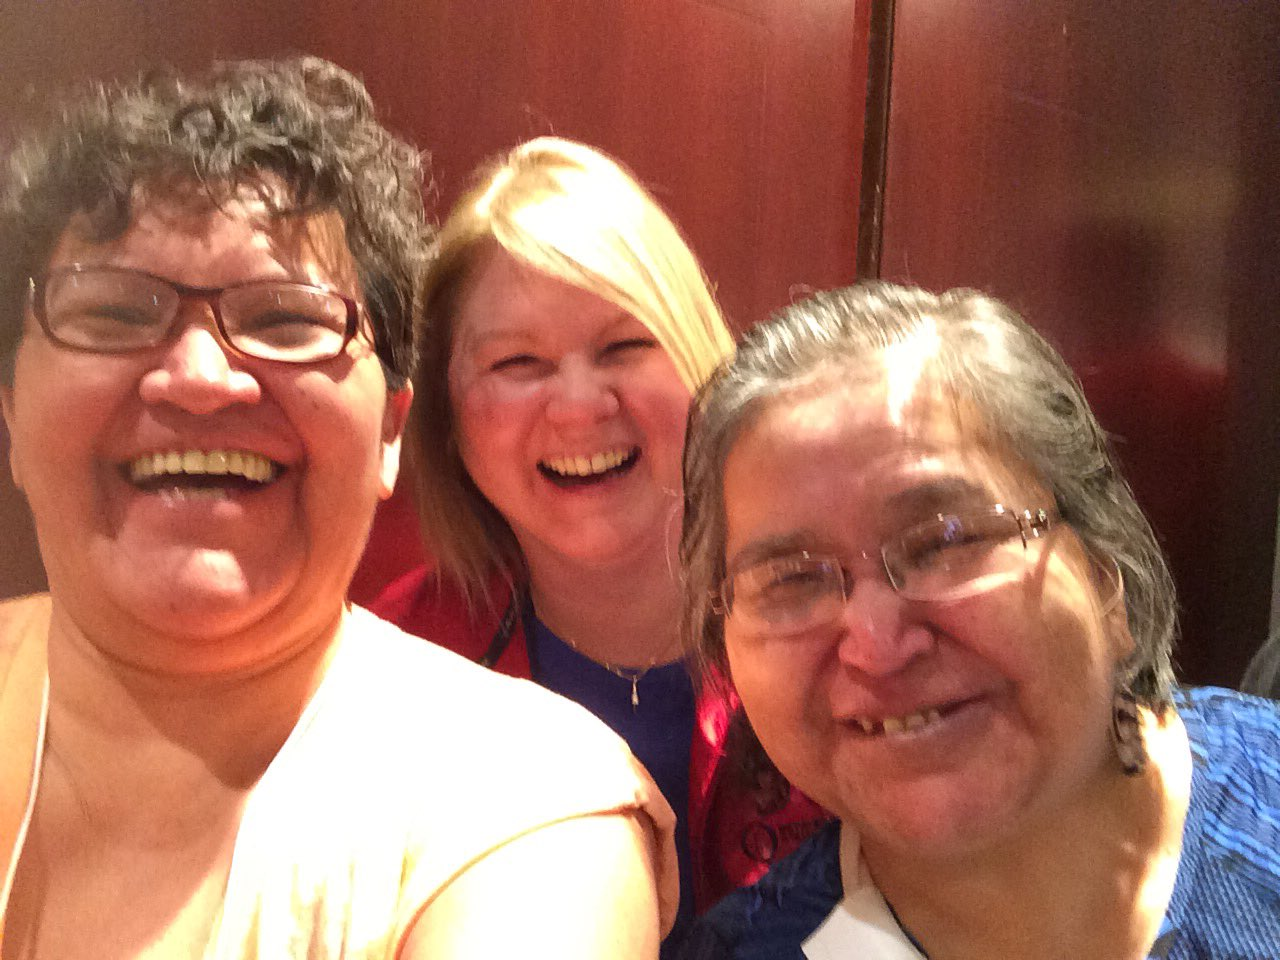 Fun with patient partner Sherry and Sharon! #QF17 https://t.co/zlKPMZ4SwW